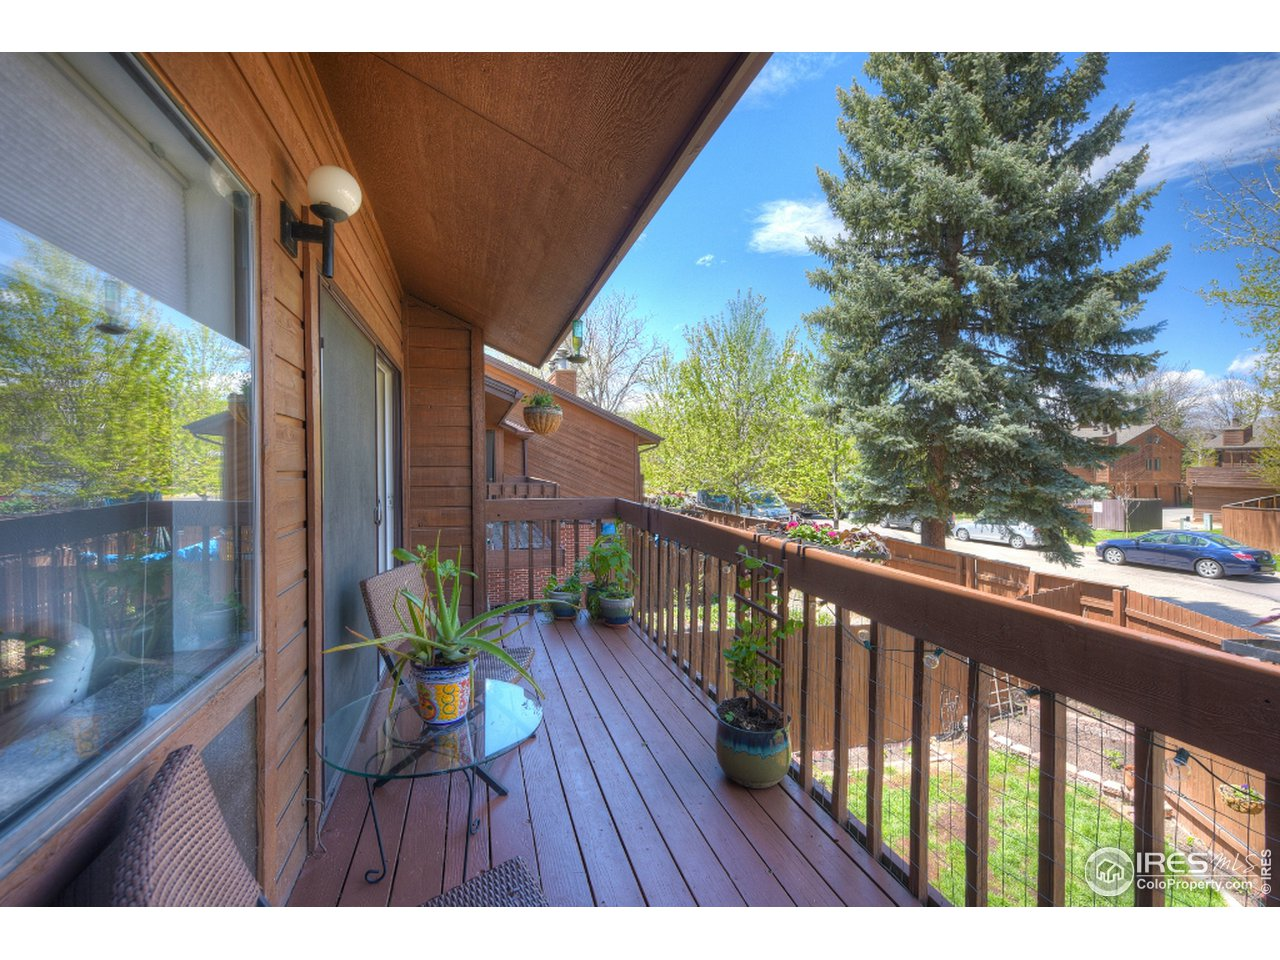 Spacious deck over looking canal/bike path